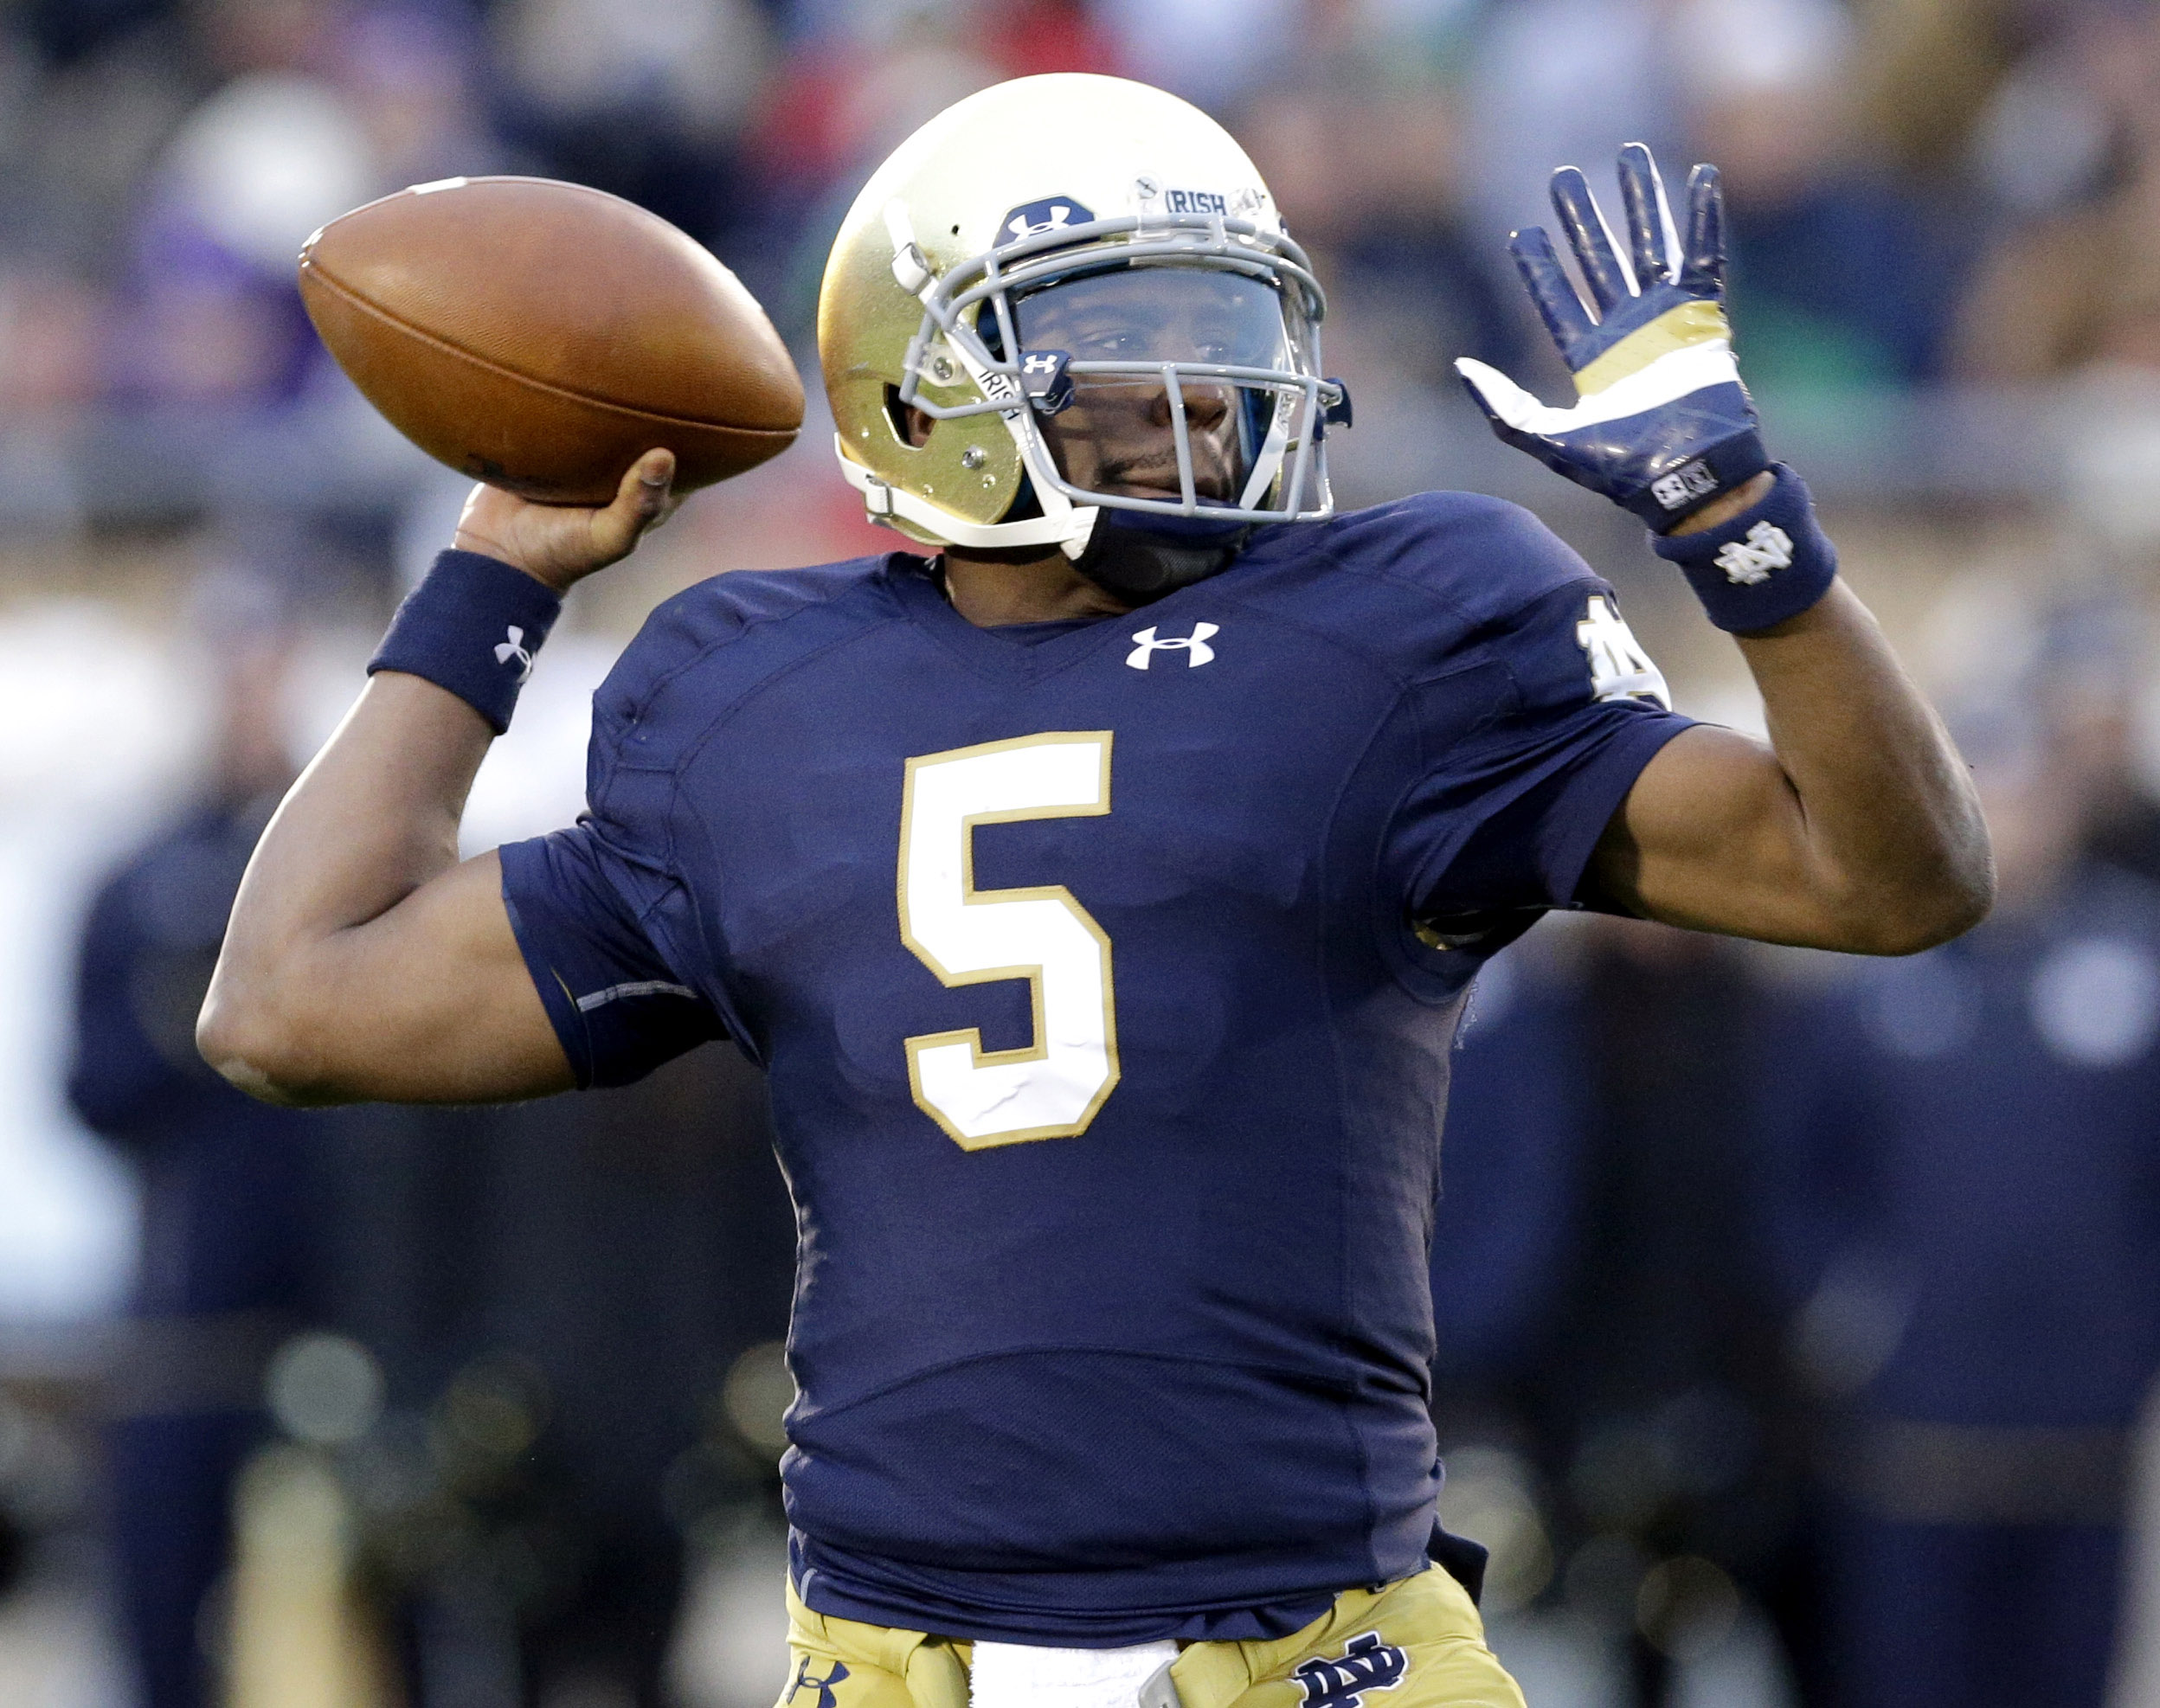 FILE - In this Saturday, Nov. 15, 2014 file photo, Notre Dame quarterback Everett Golson (5) looks to a pass during the first half of an NCAA college football game against Northwestern in South Bend, Ind. Florida State coach Jimbo Fisher says he has met w